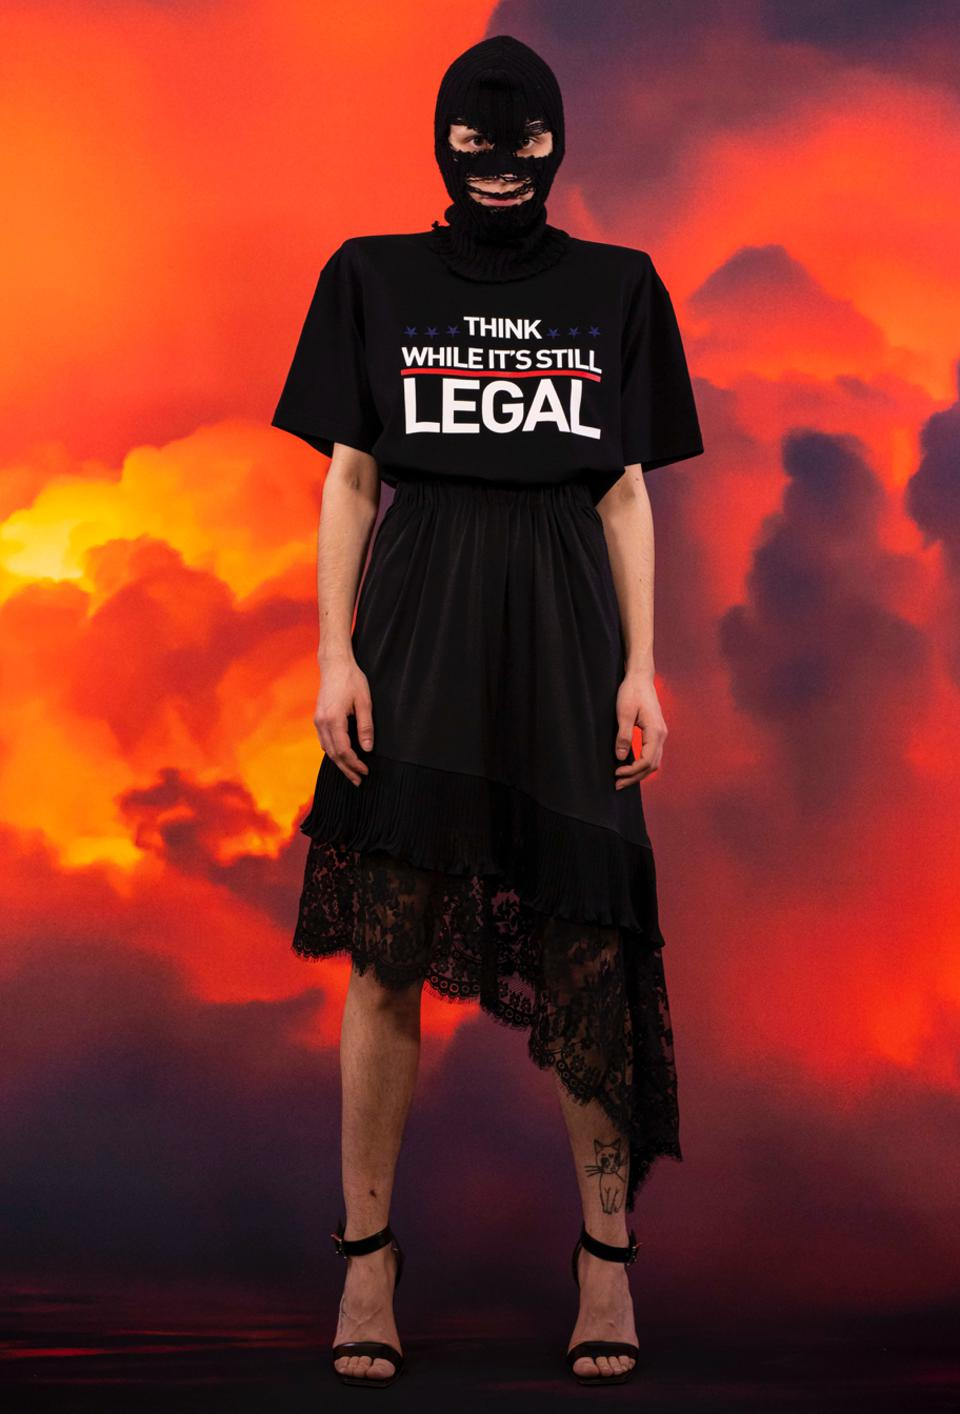 A model wearing a ski mask, asymmetrical black skirt and T-shirt that reads ″Think While It's Still Legal″.